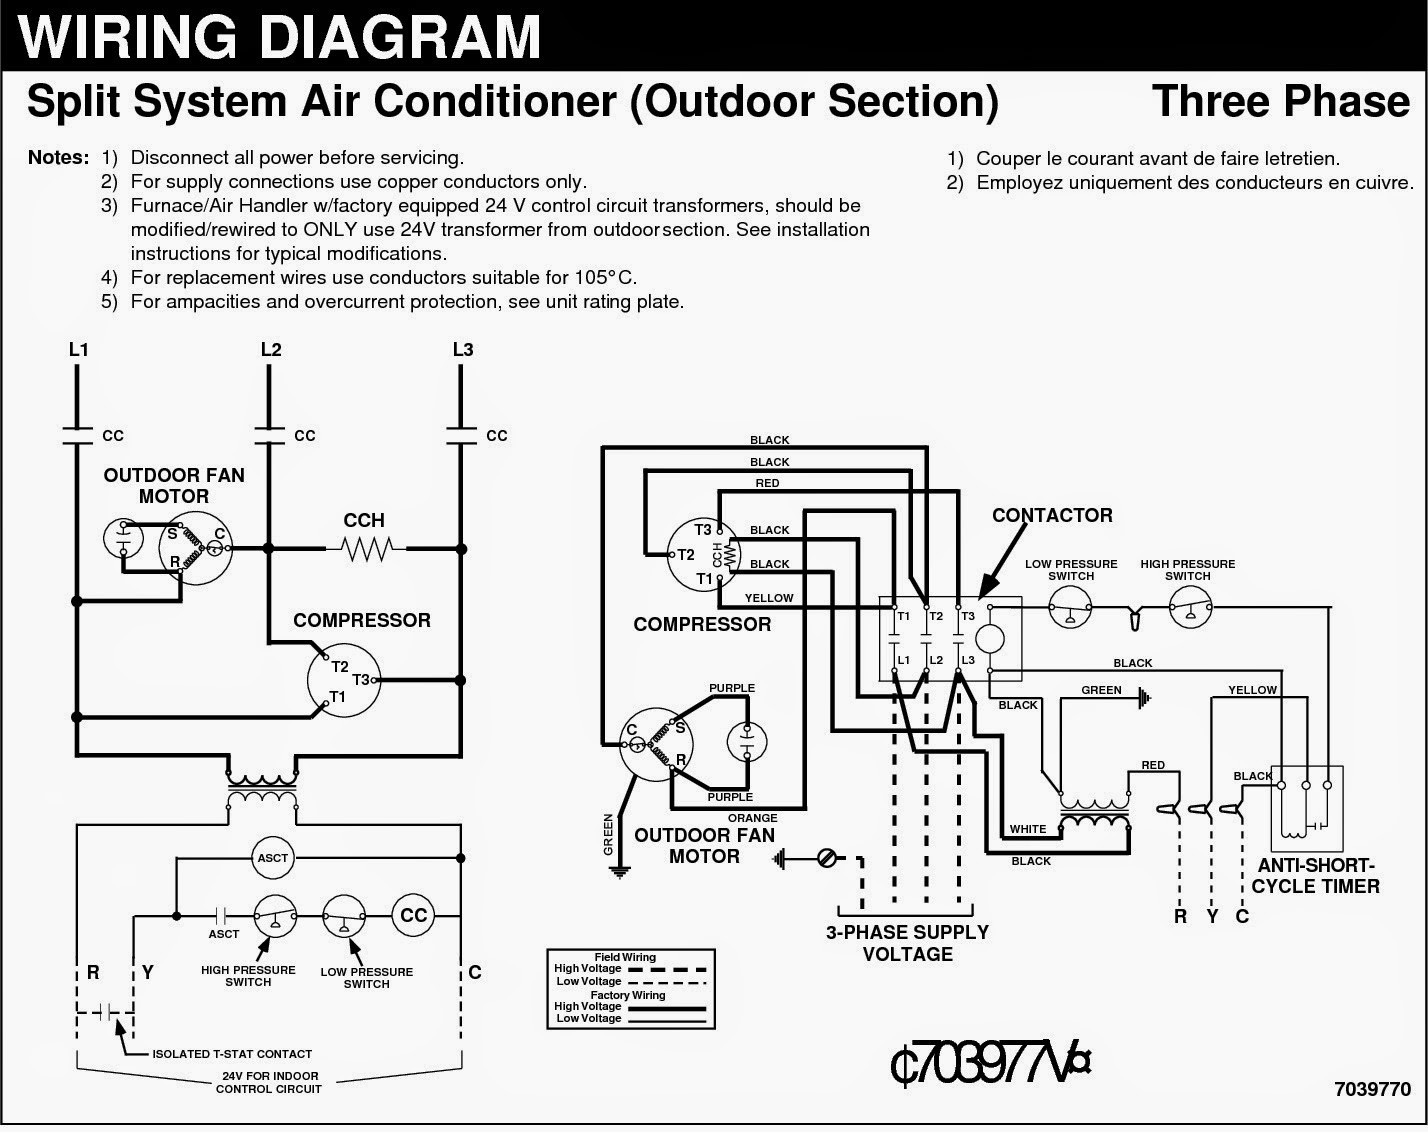 medium resolution of home hvac wiring diagram wiring diagram third level freightliner wiring diagrams hvac air conditioner wiring ladder